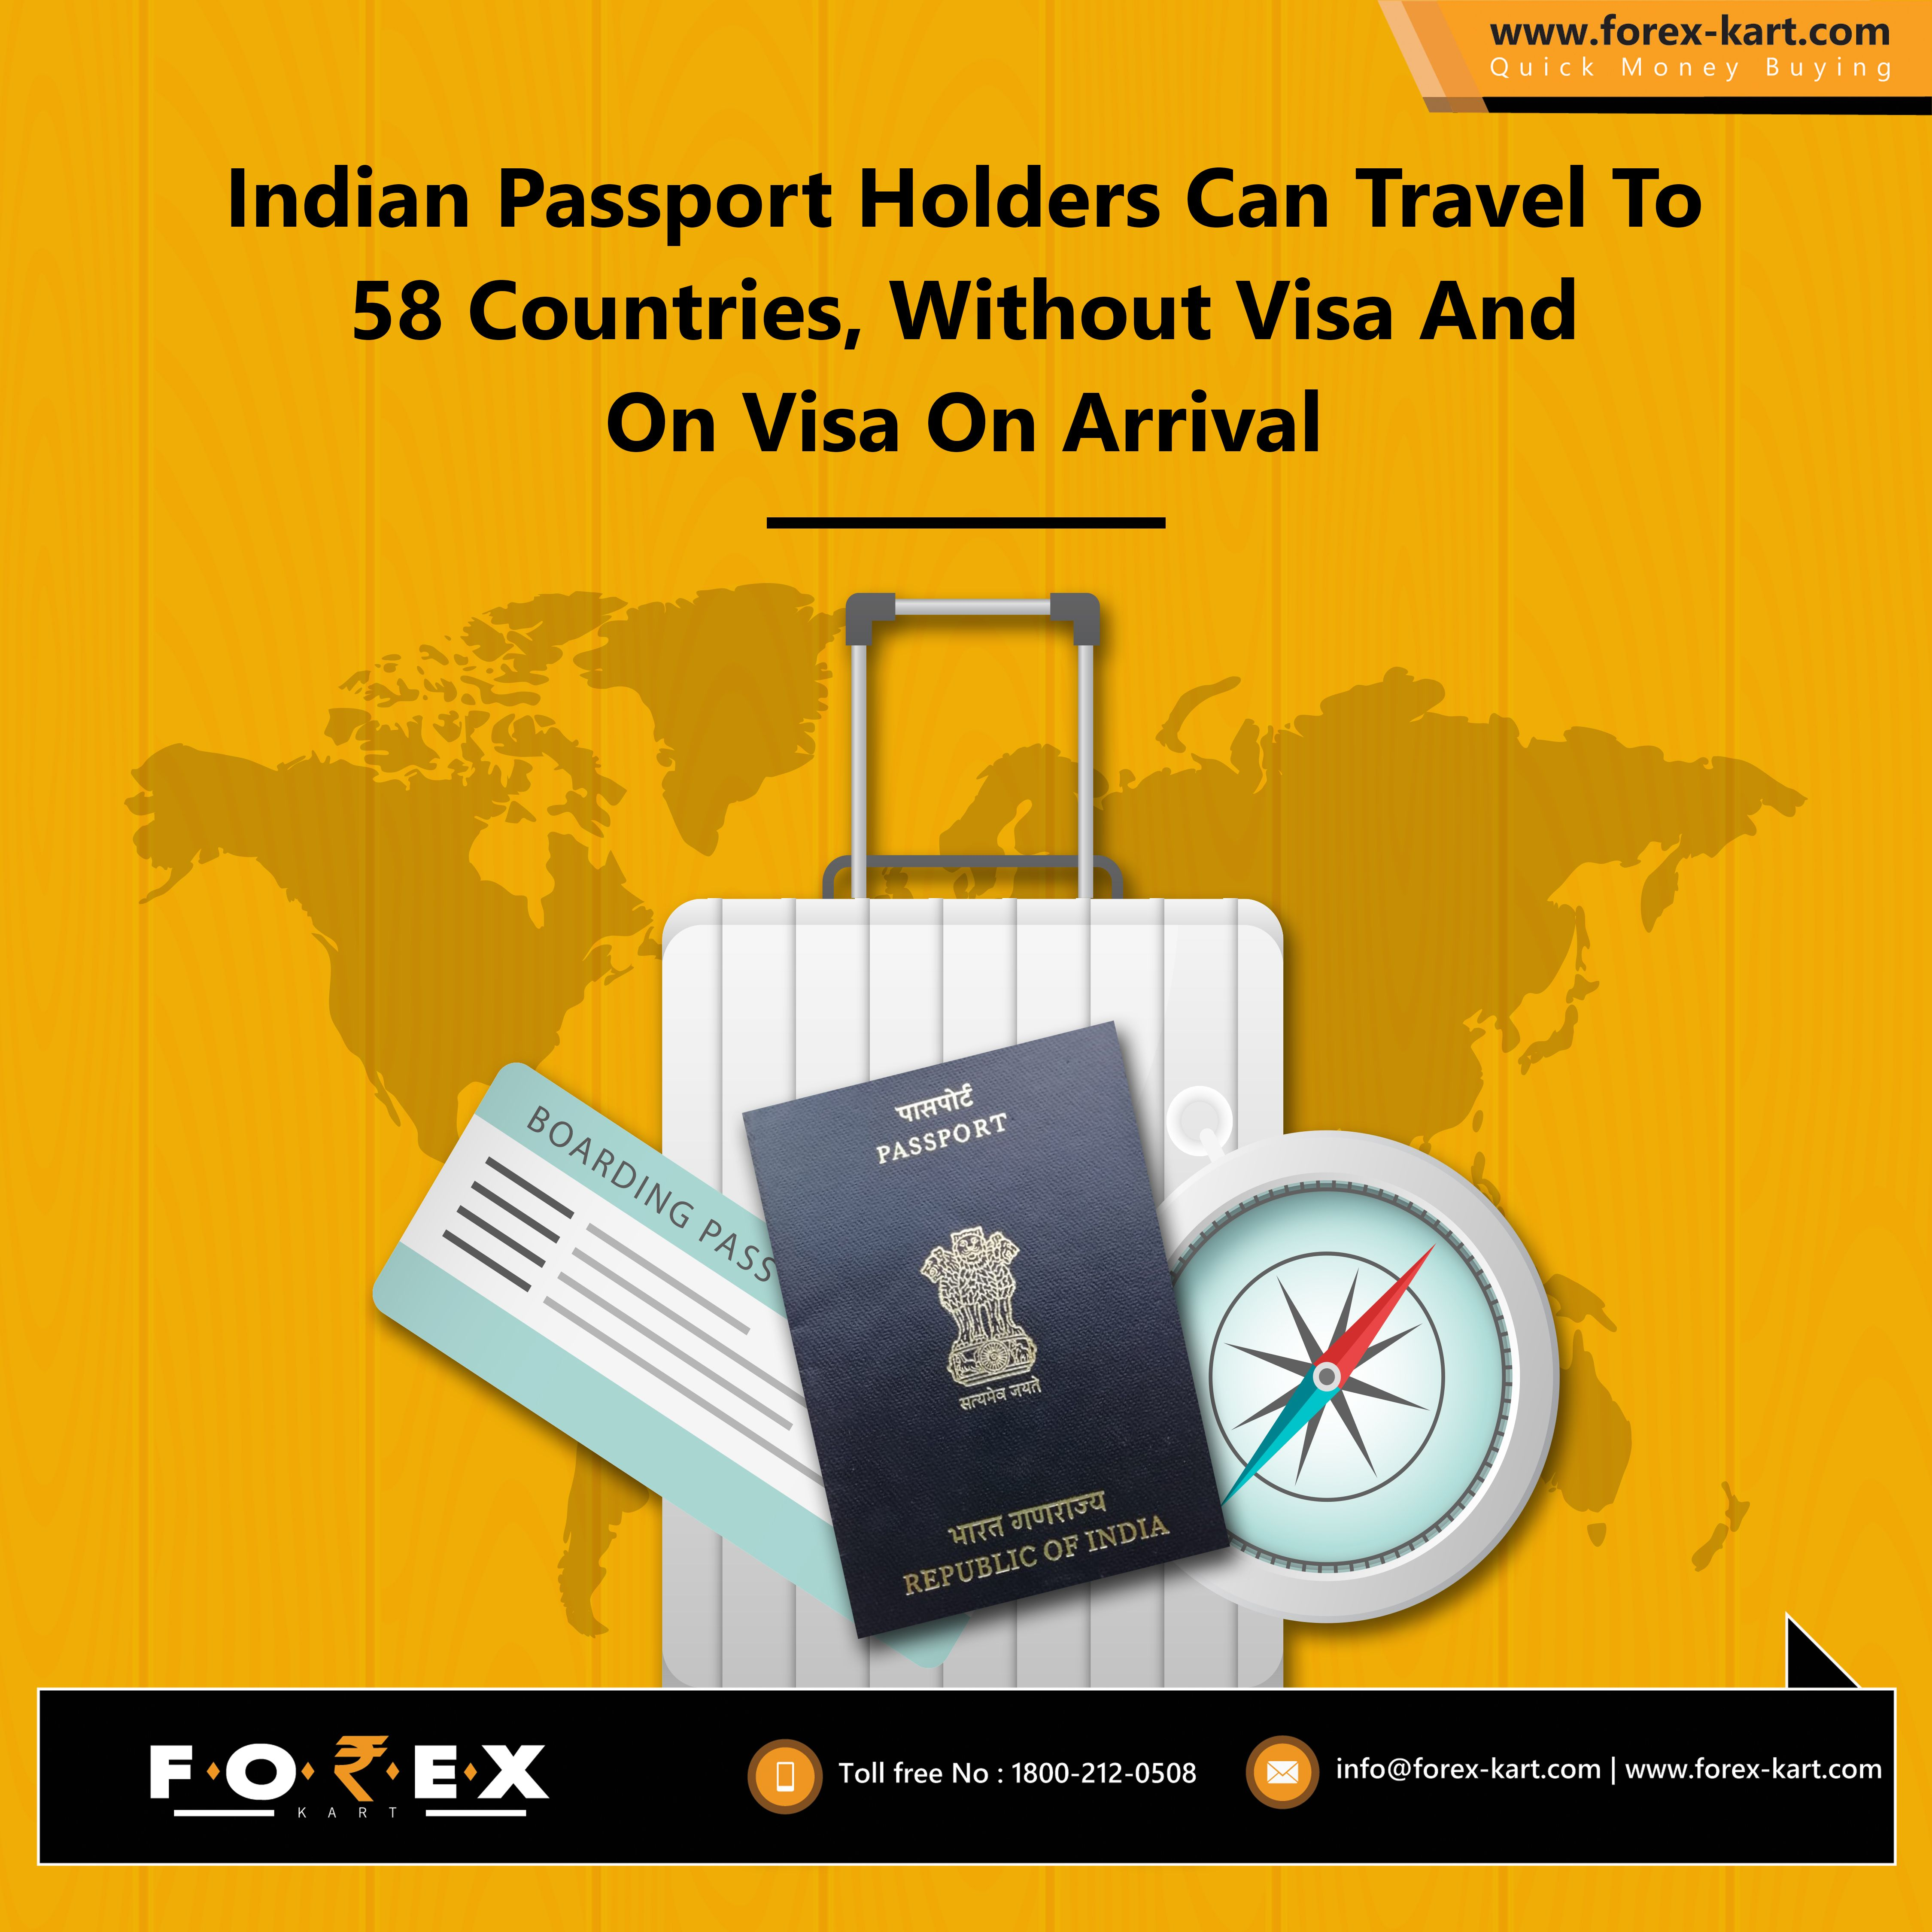 aa55bdd9ddbc0298cce9d75fdcff21e9 - Indian Visa Application For Bangladeshi Passport Holder